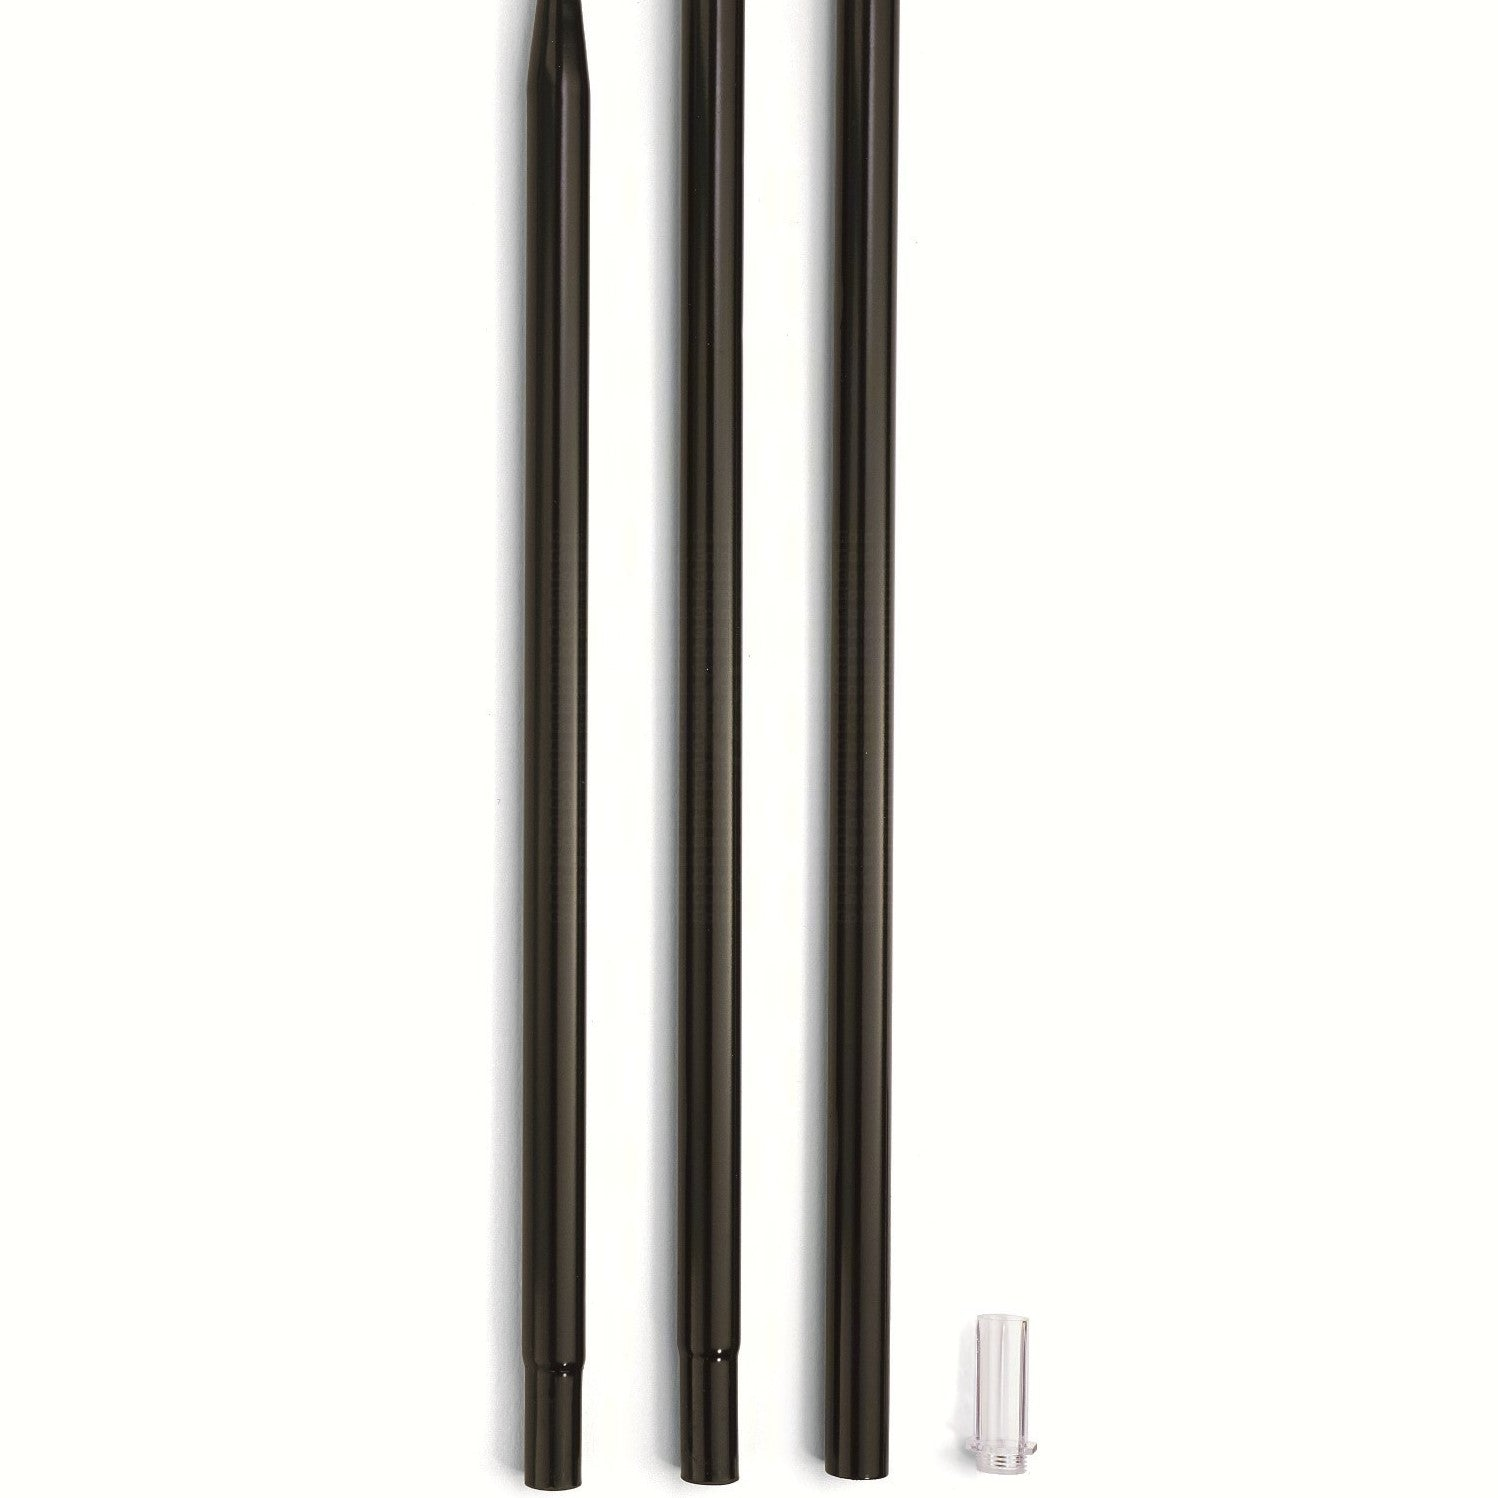 68 IN Garden Pole 1 IN Outside Diameter 3 Piece